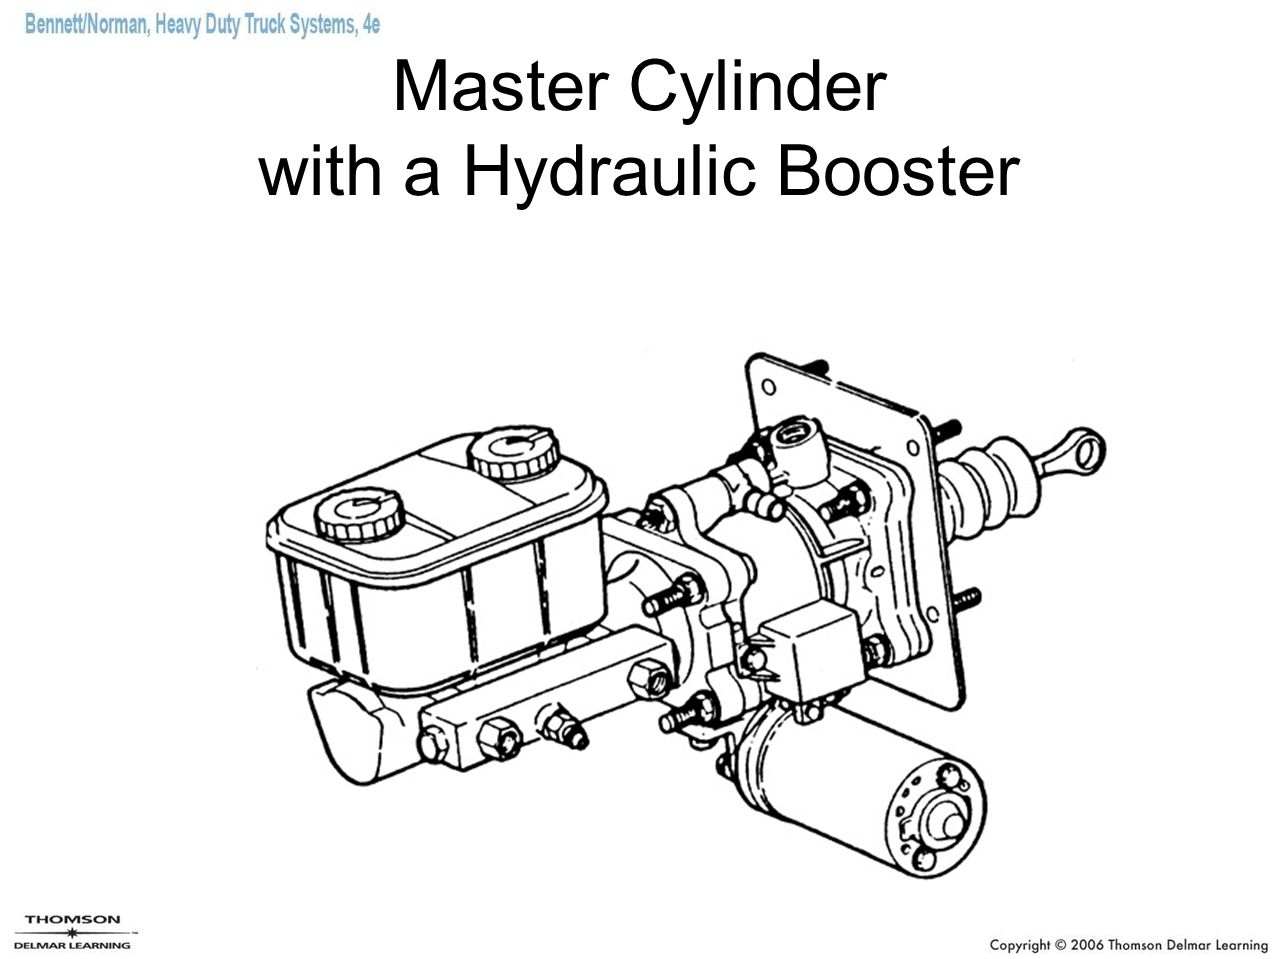 Hydraulic Brakes And Air Over Brake Systems Ppt Video Basic System Diagram Troubleshooting Tips For 12 Master Cylinder With A Booster